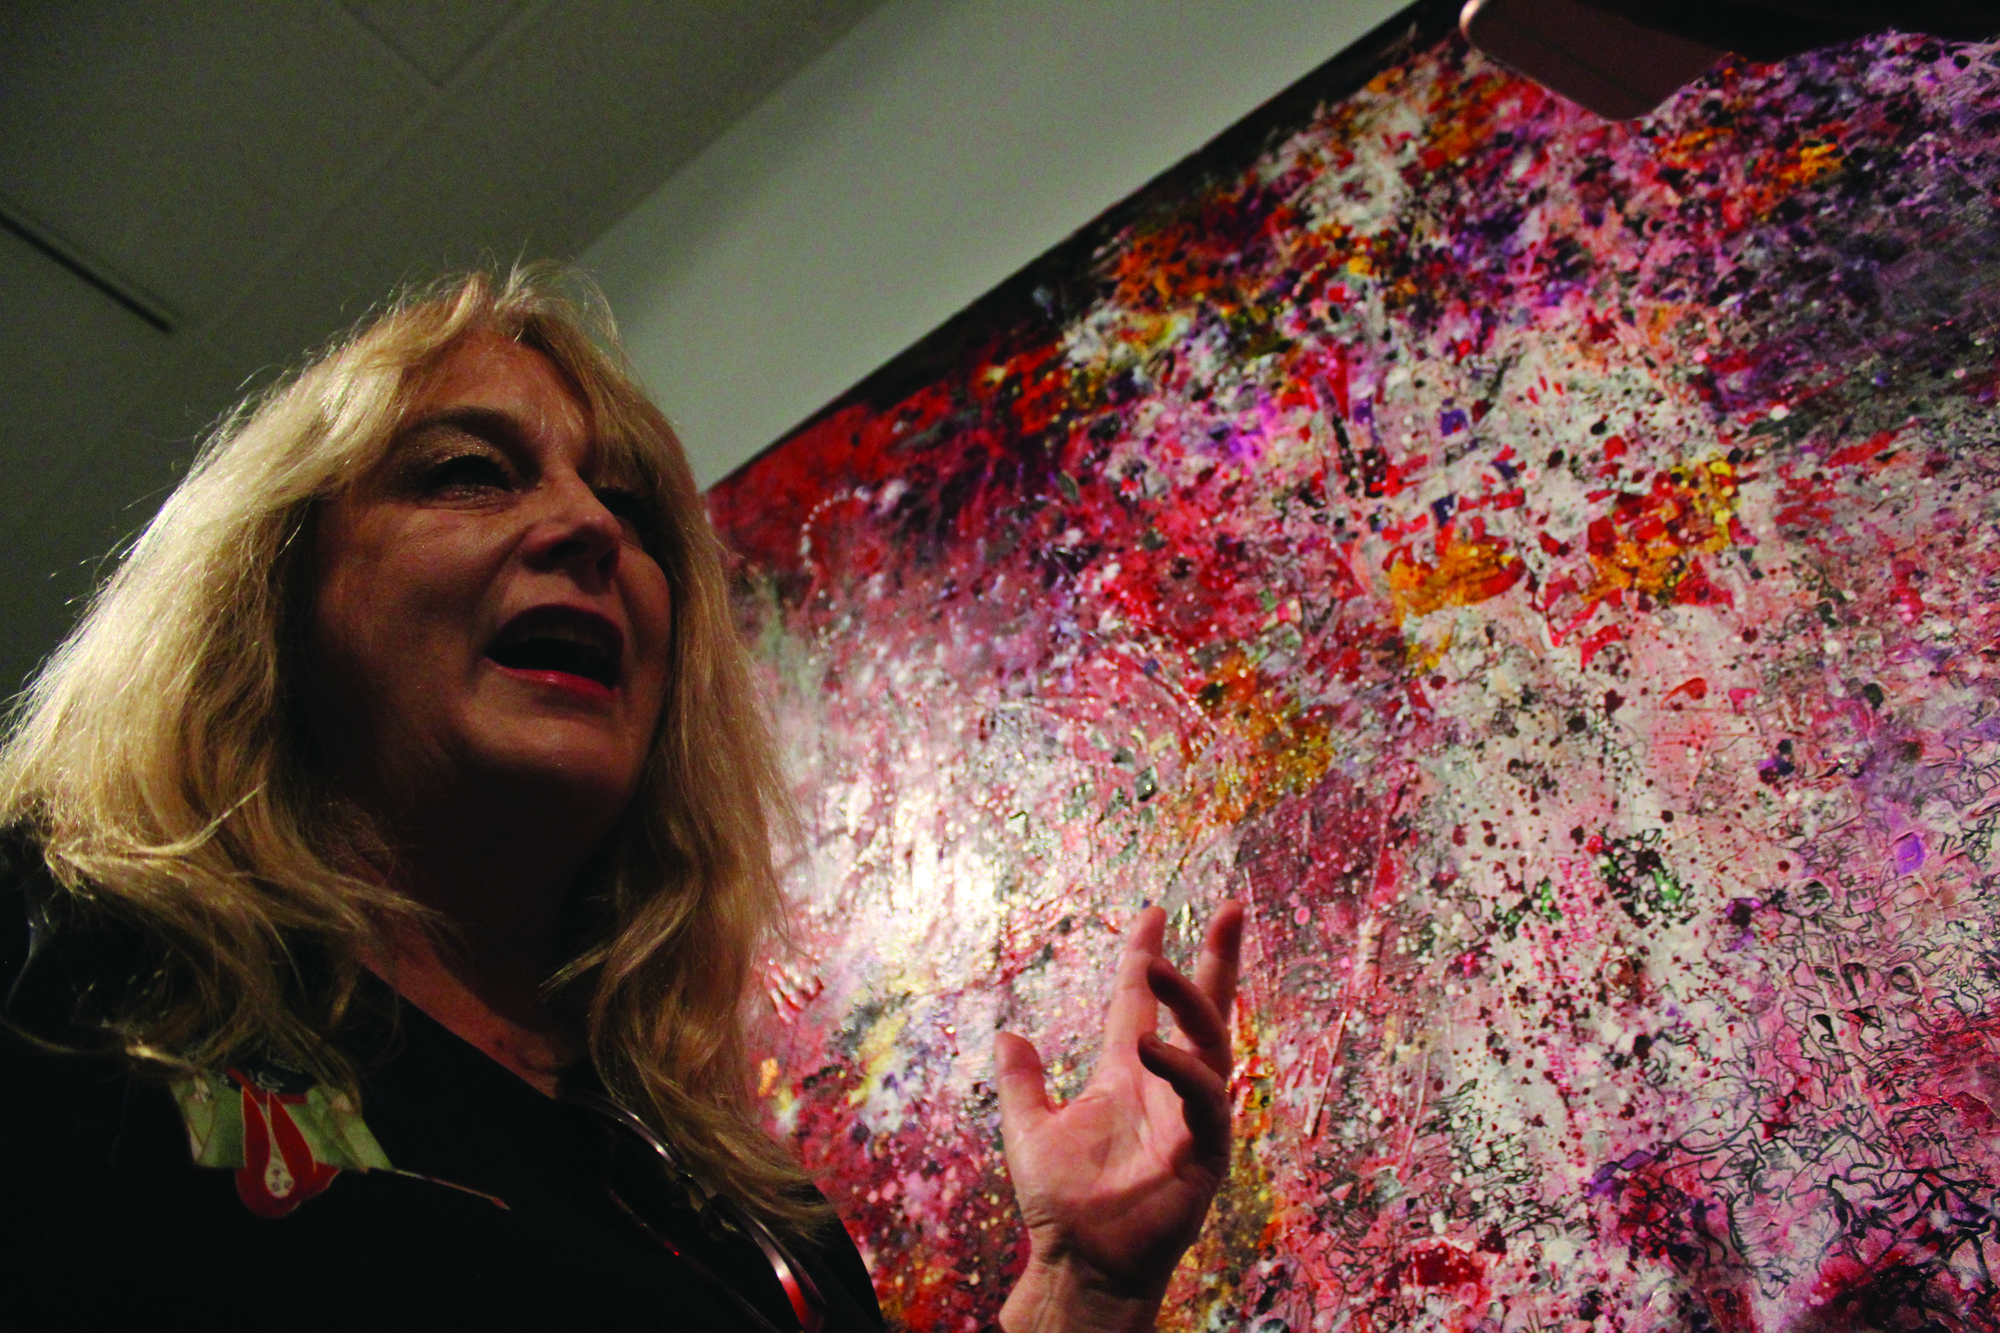 McPhee's exhibition gives students abstract visuals to art